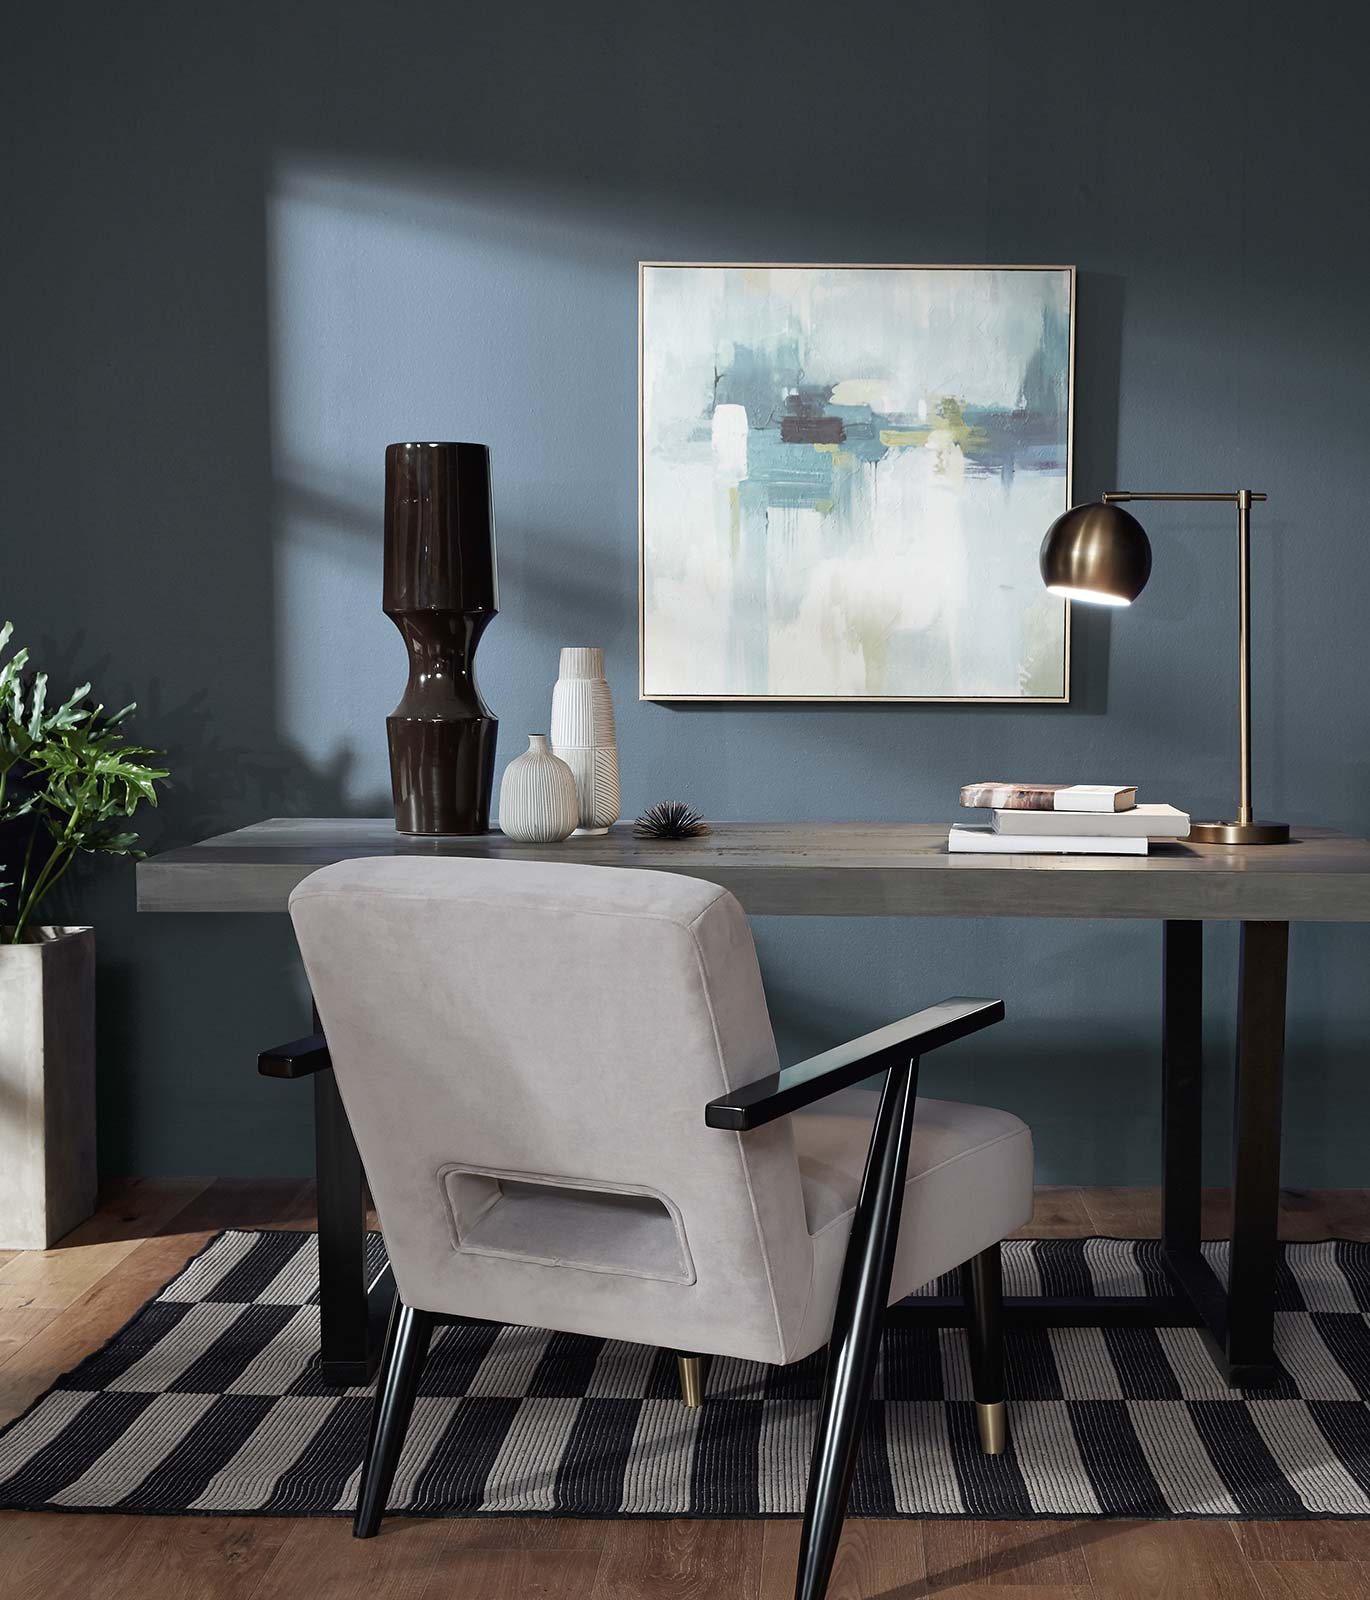 An office with a gray colored wood desk sitting against a wall painted in blue. There is a abstract painting hanging on the wall. The mood is relaxed and calm.